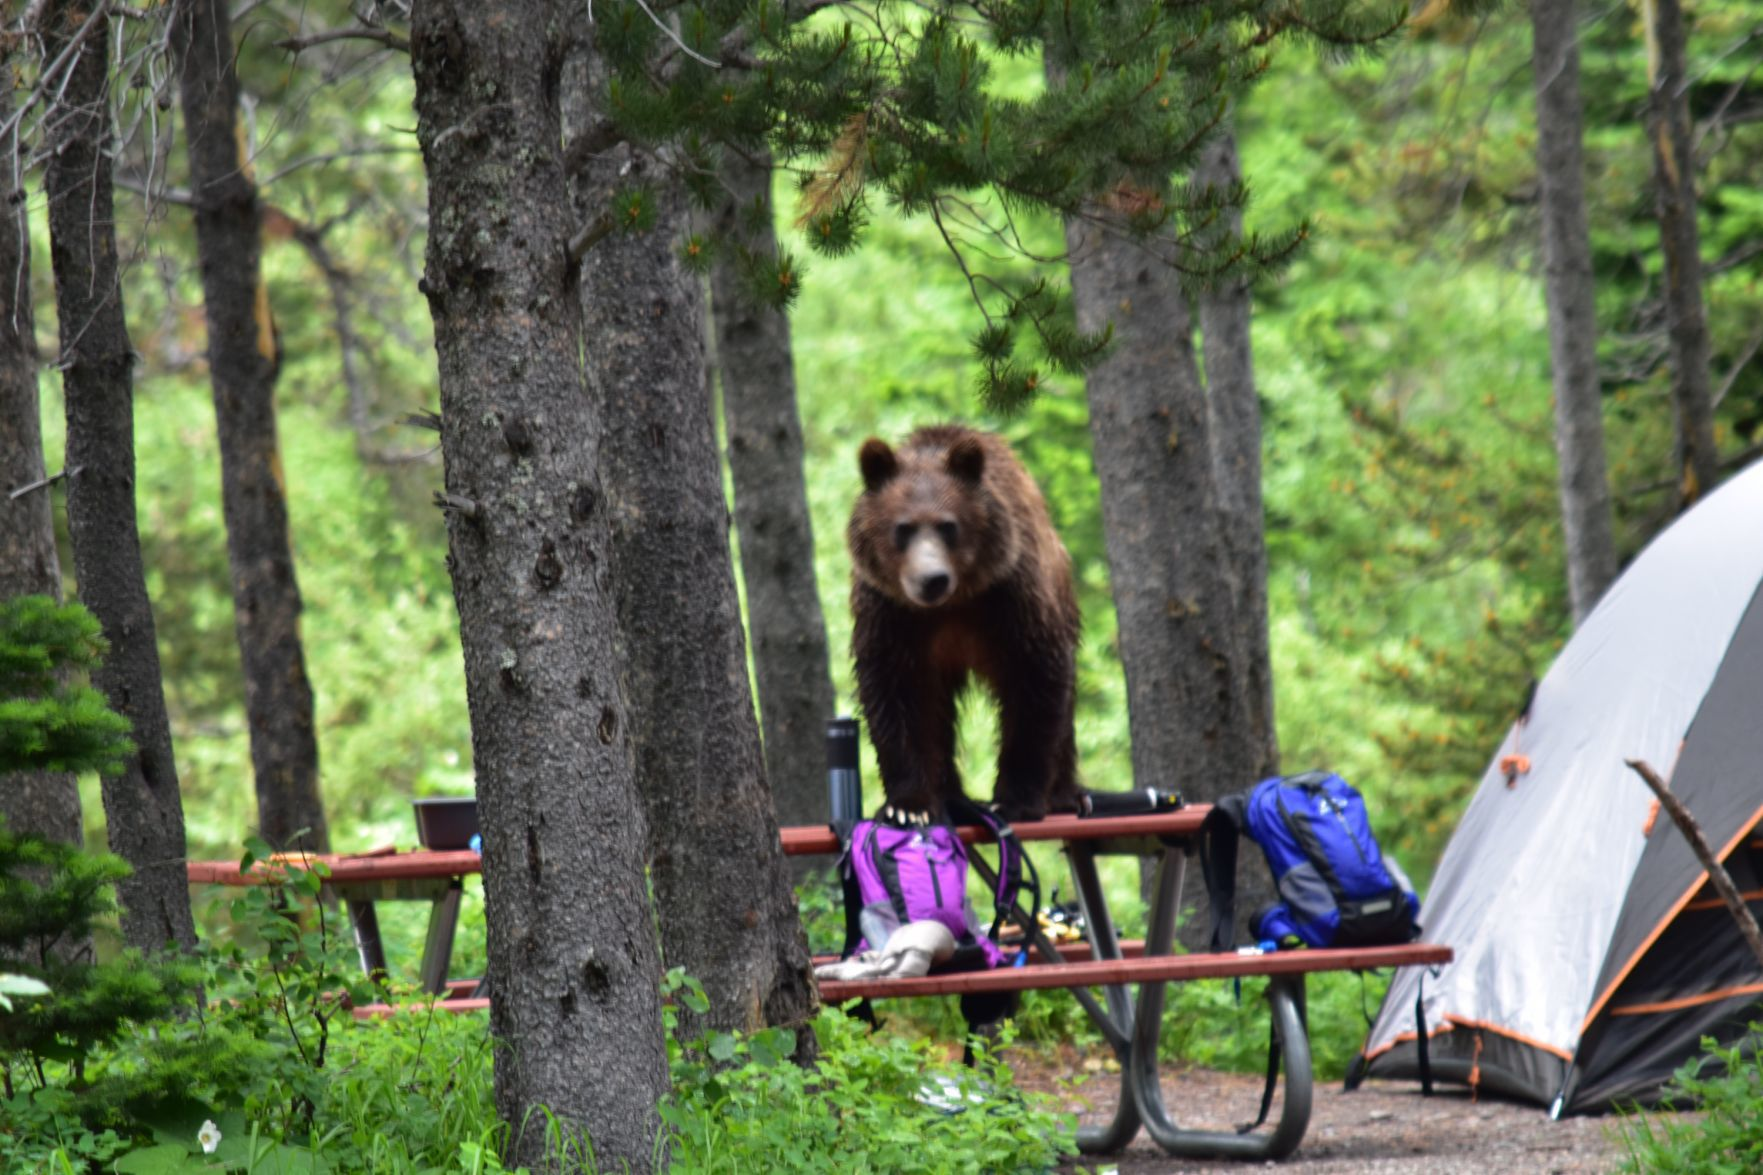 The Billings Gazette & Tents soft-sided campers temporarily banned at Many Glacier due to ...